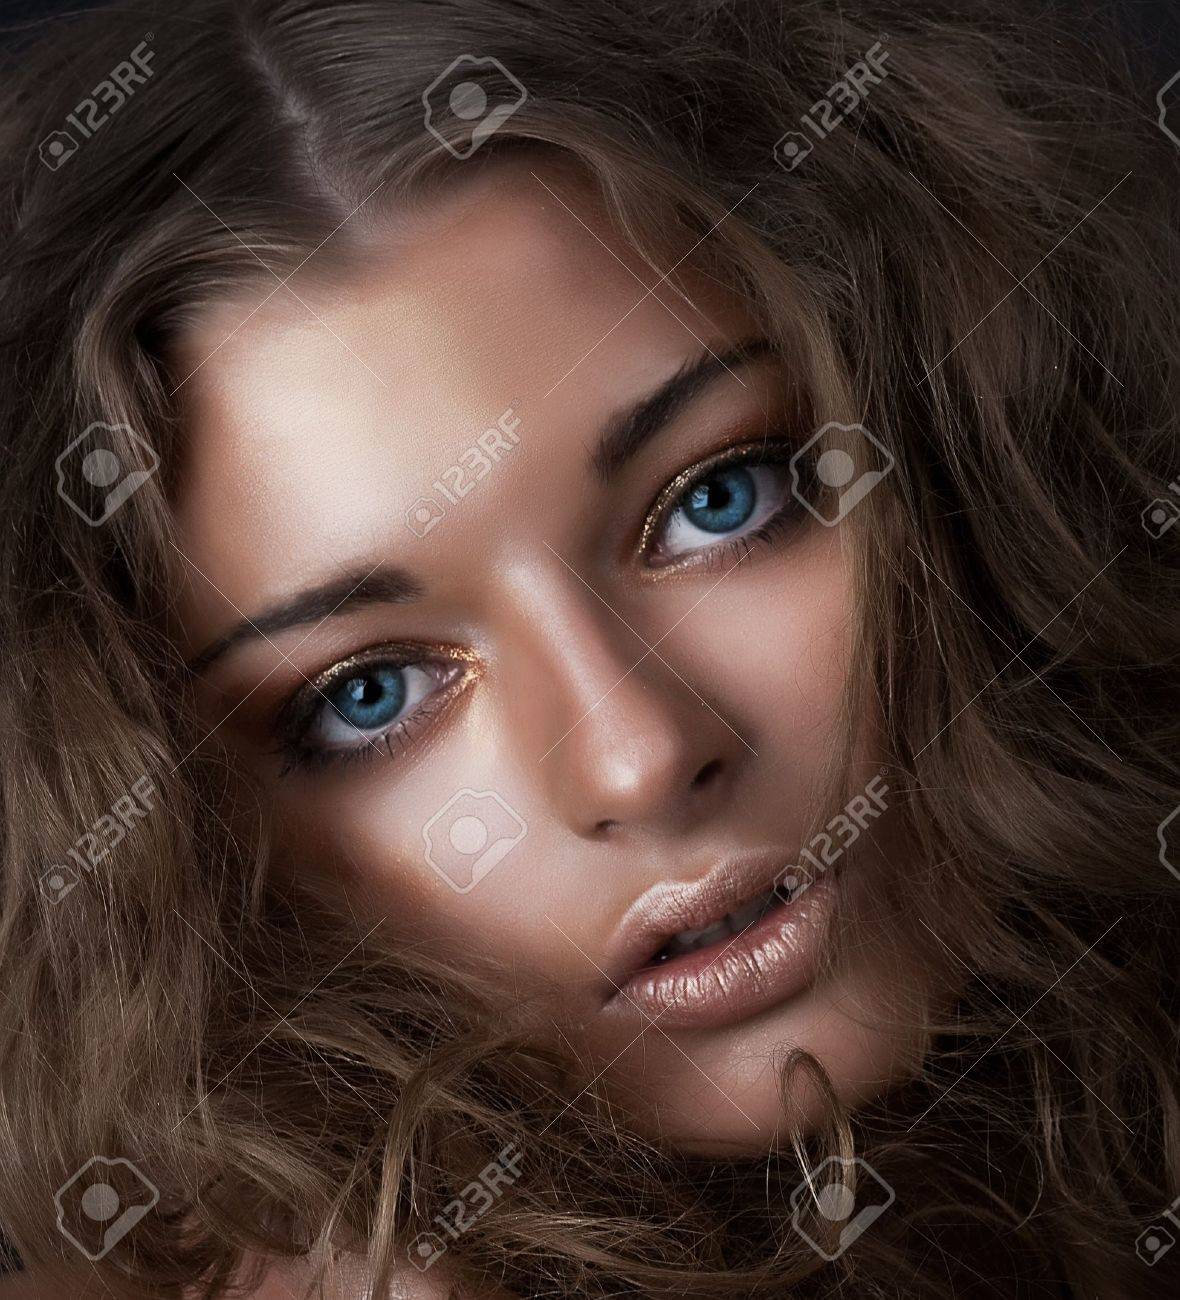 Beauty and health, cosmetics and make-up  Portrait of fashion woman model Stock Photo - 13174190